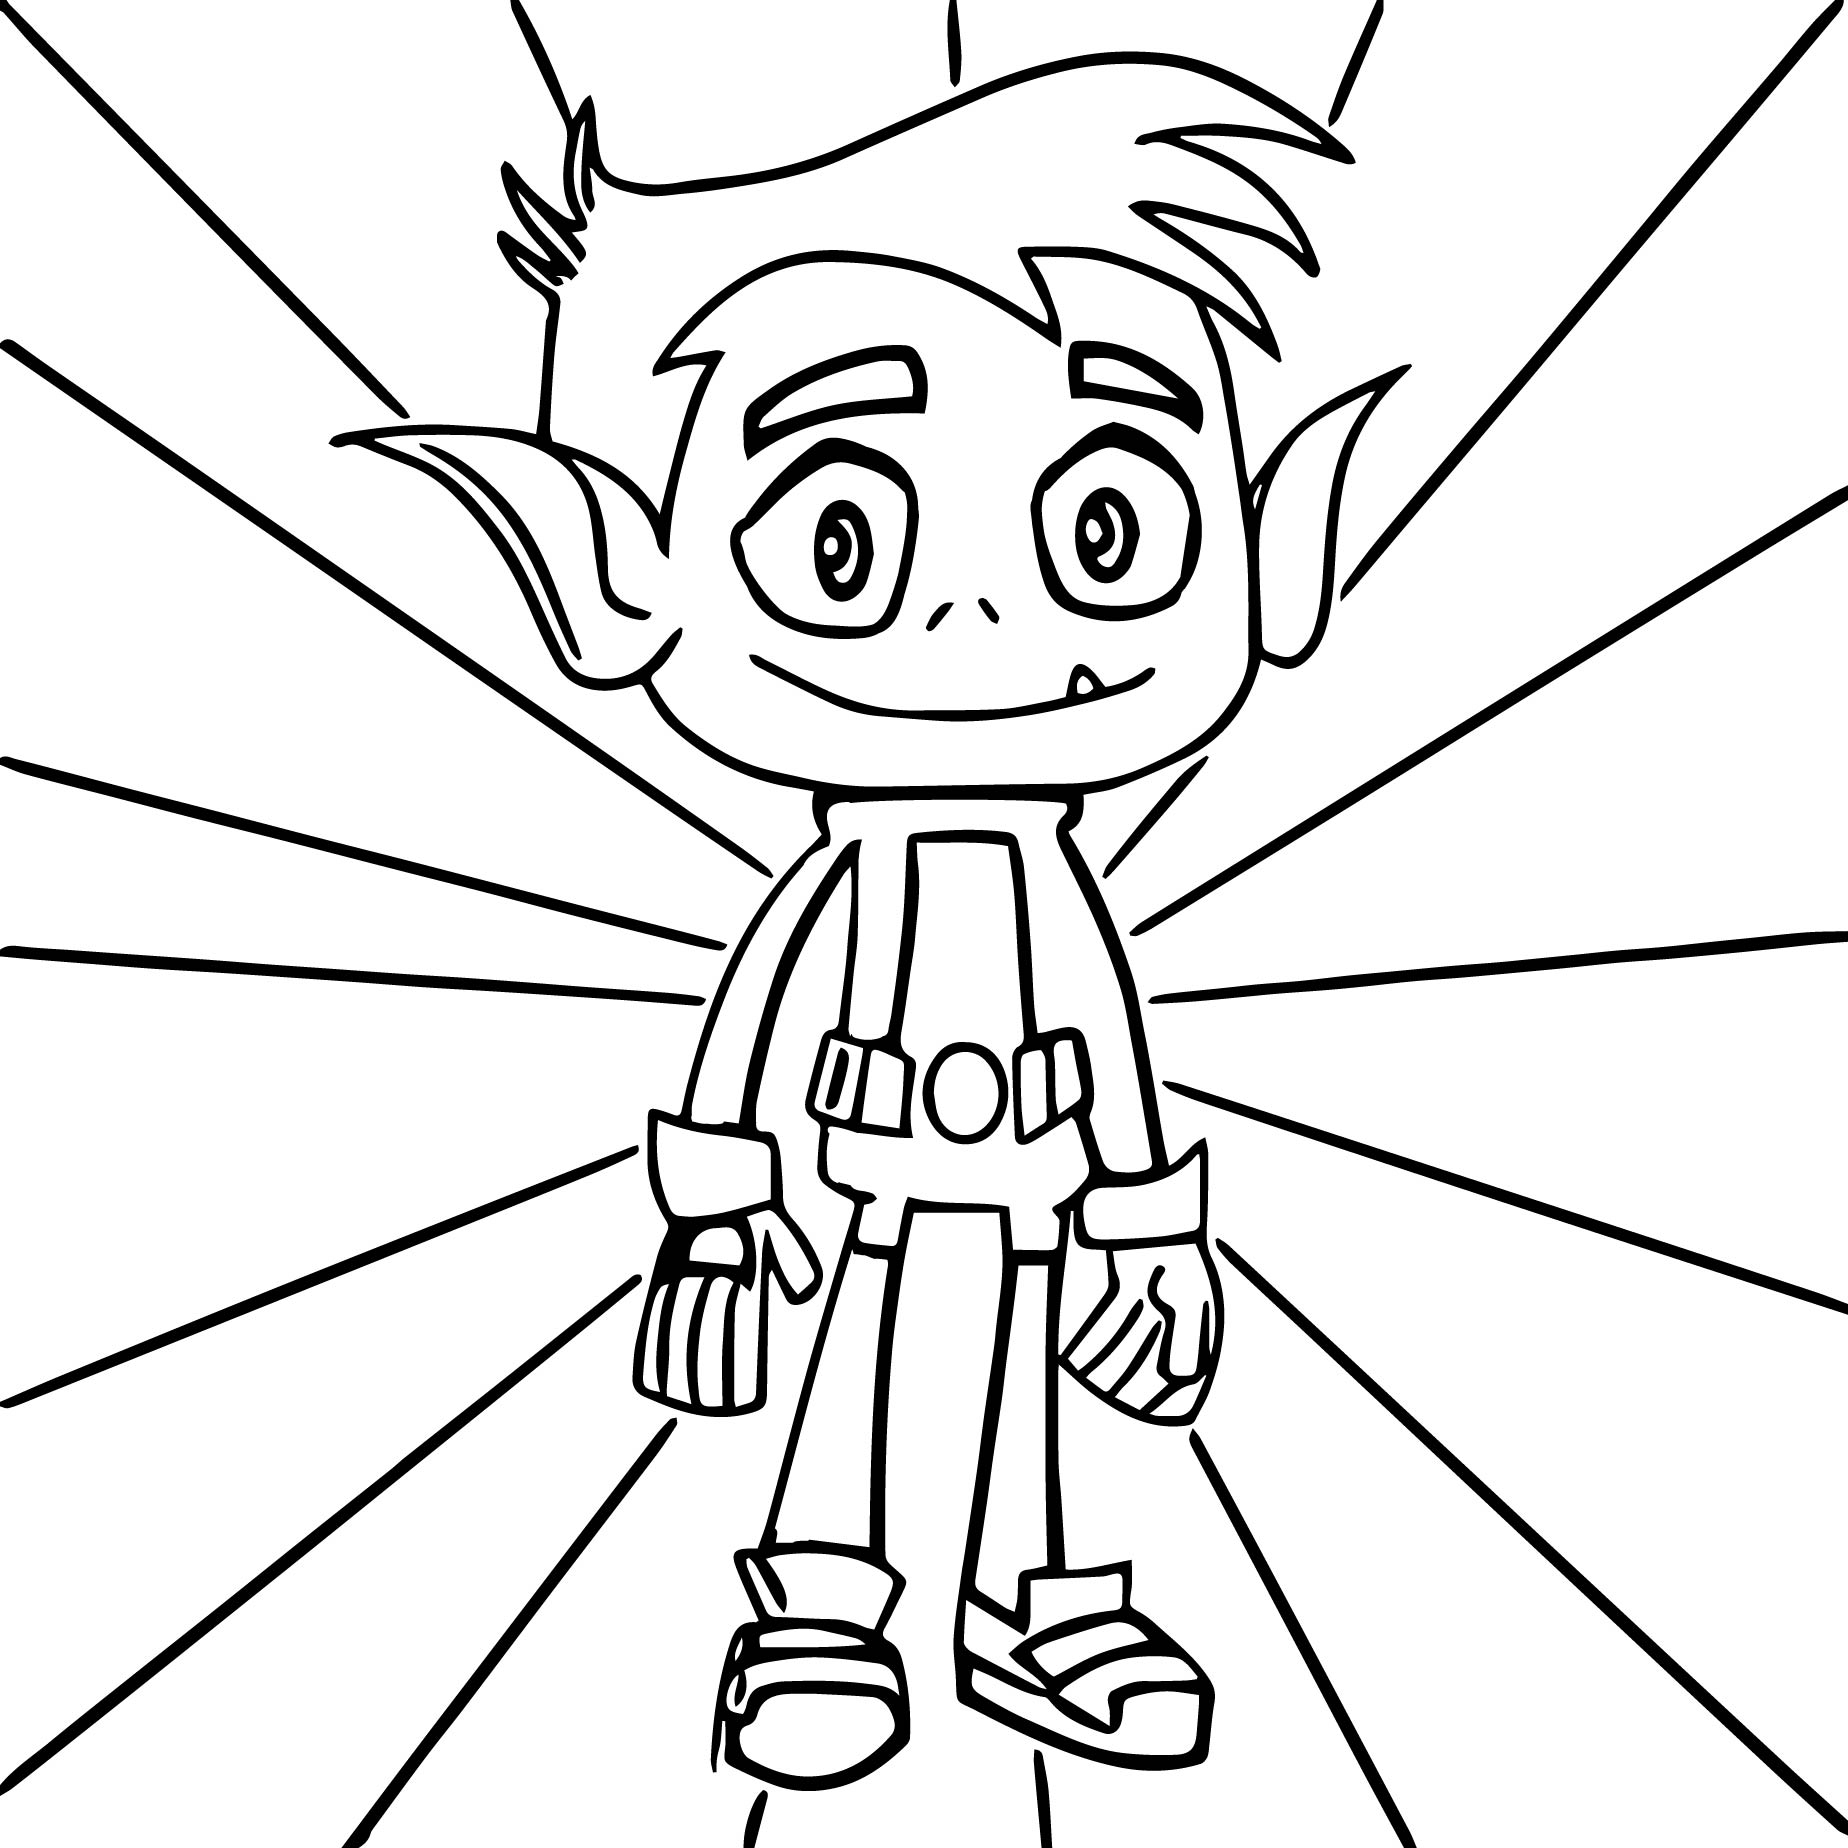 Coloring Pages For Boys at GetDrawings.com | Free for ...